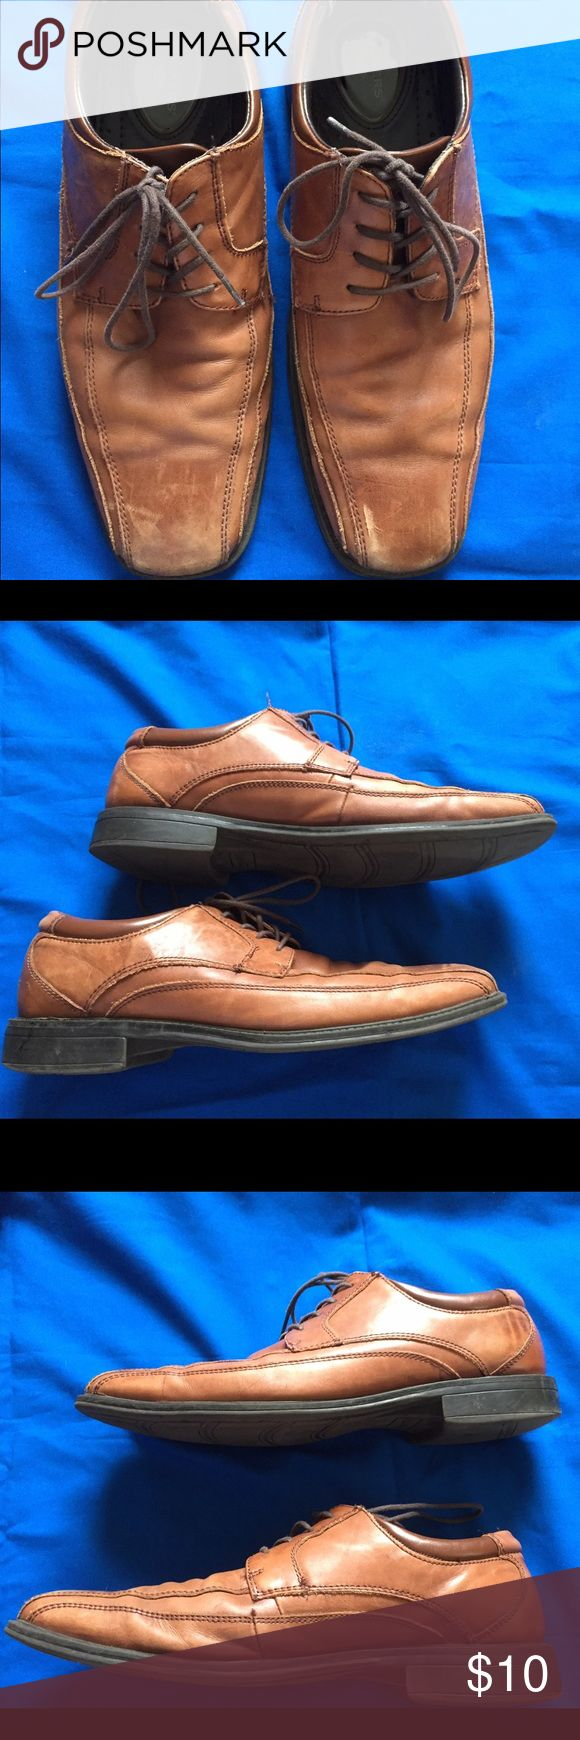 Men's brown Dockers dress shoes Men's brown Dockers dress shoes the front of the shoes are scuffed up can be repaired. Heels and souls are still good. Dockers Shoes